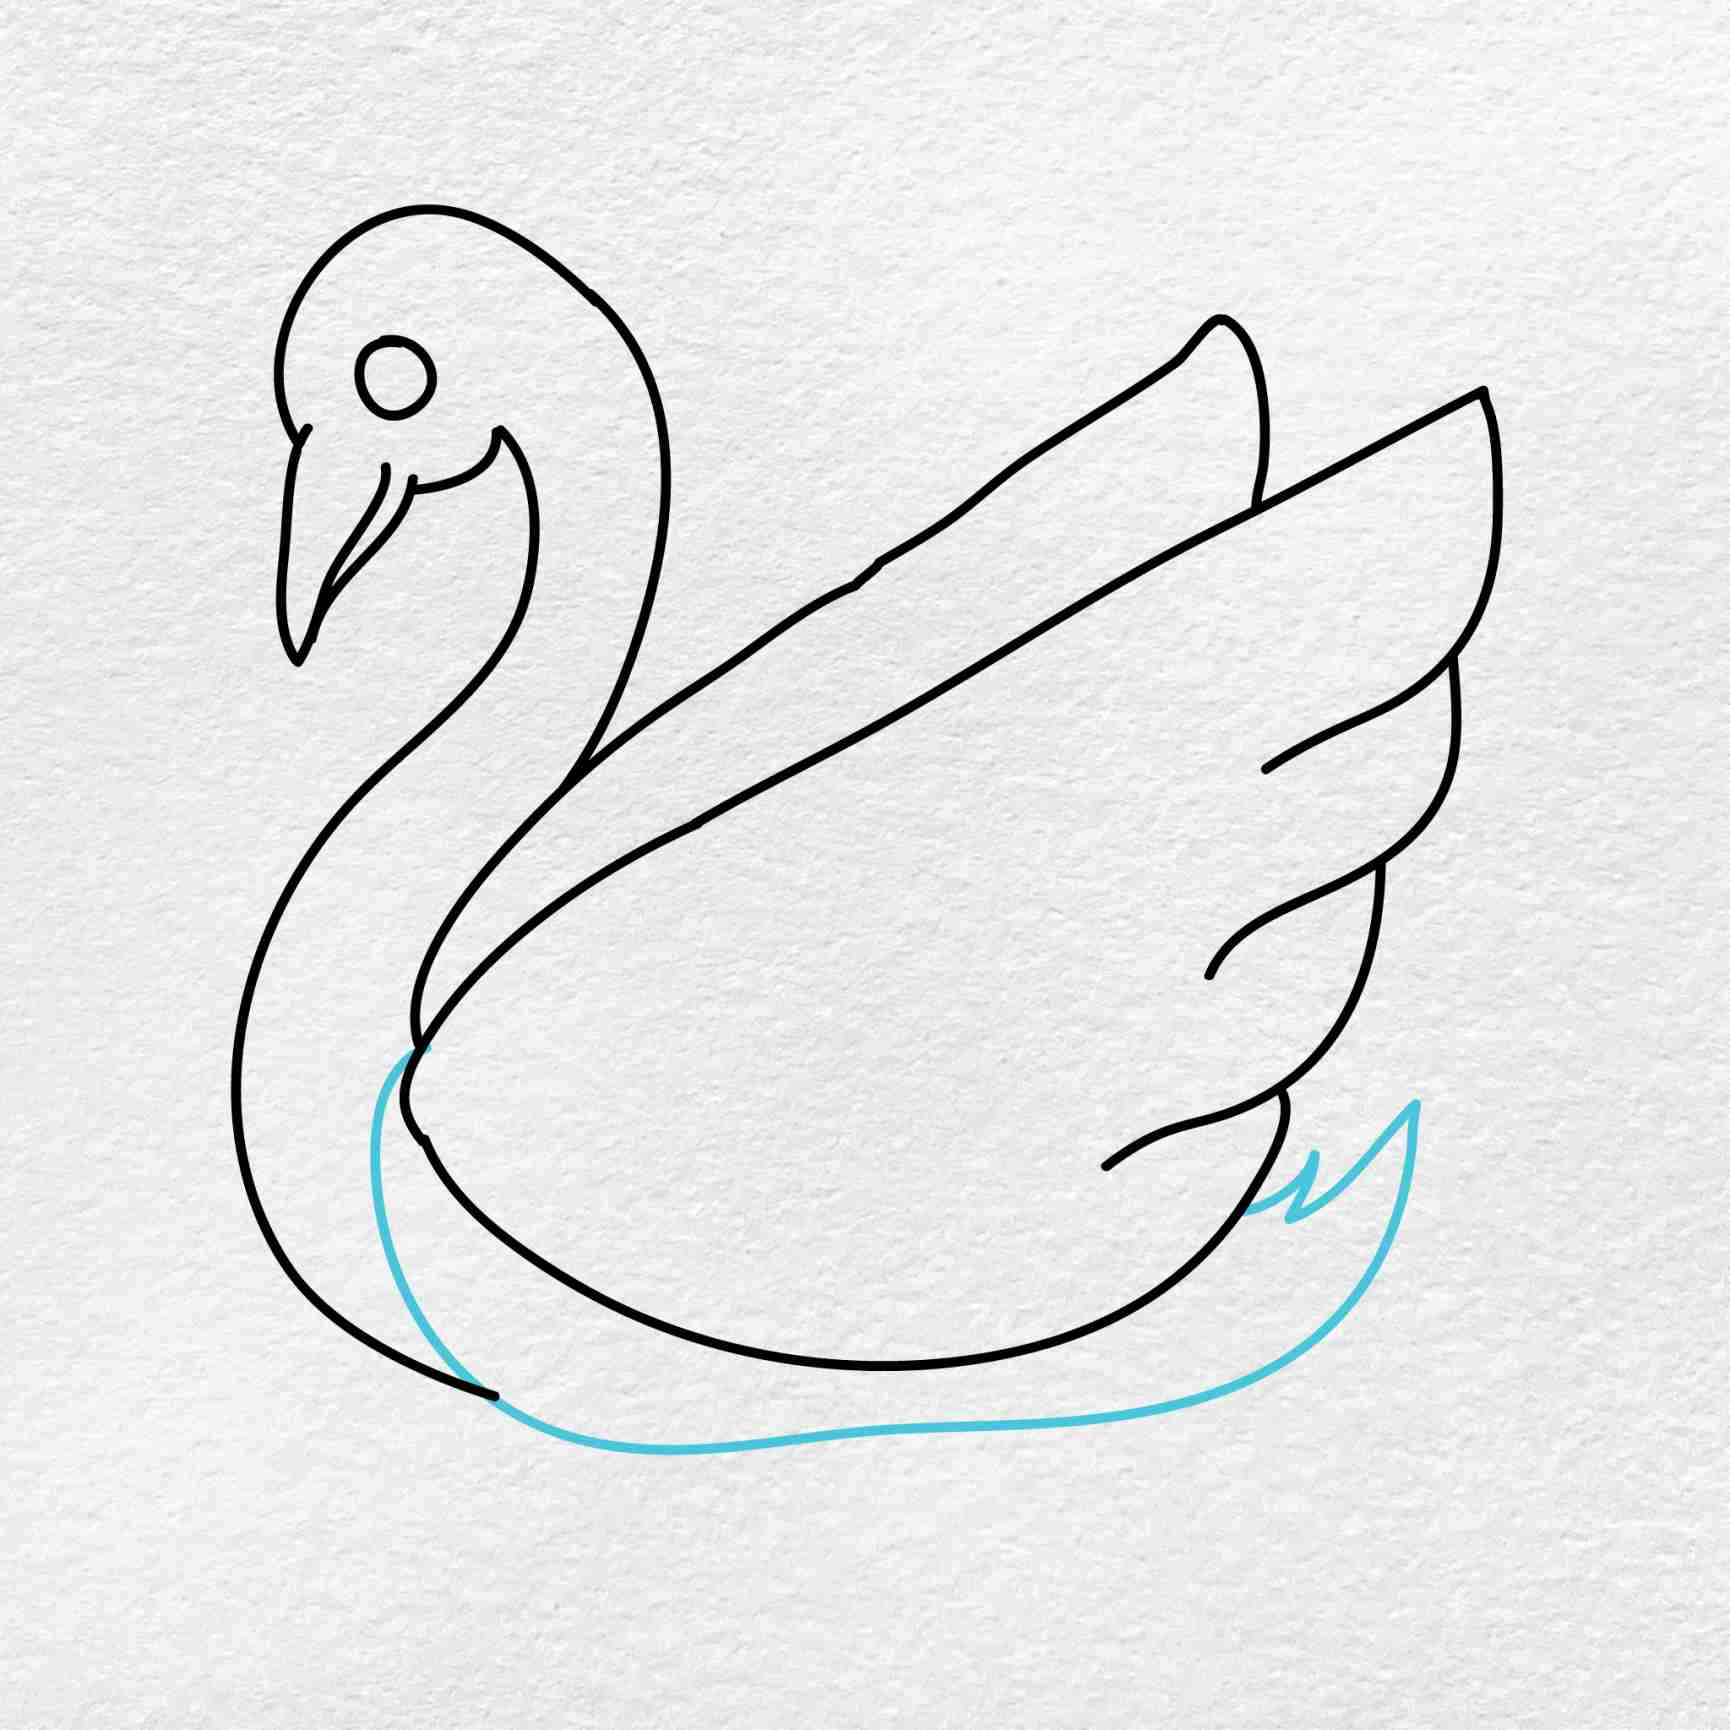 How To Draw A Swan: Step 5